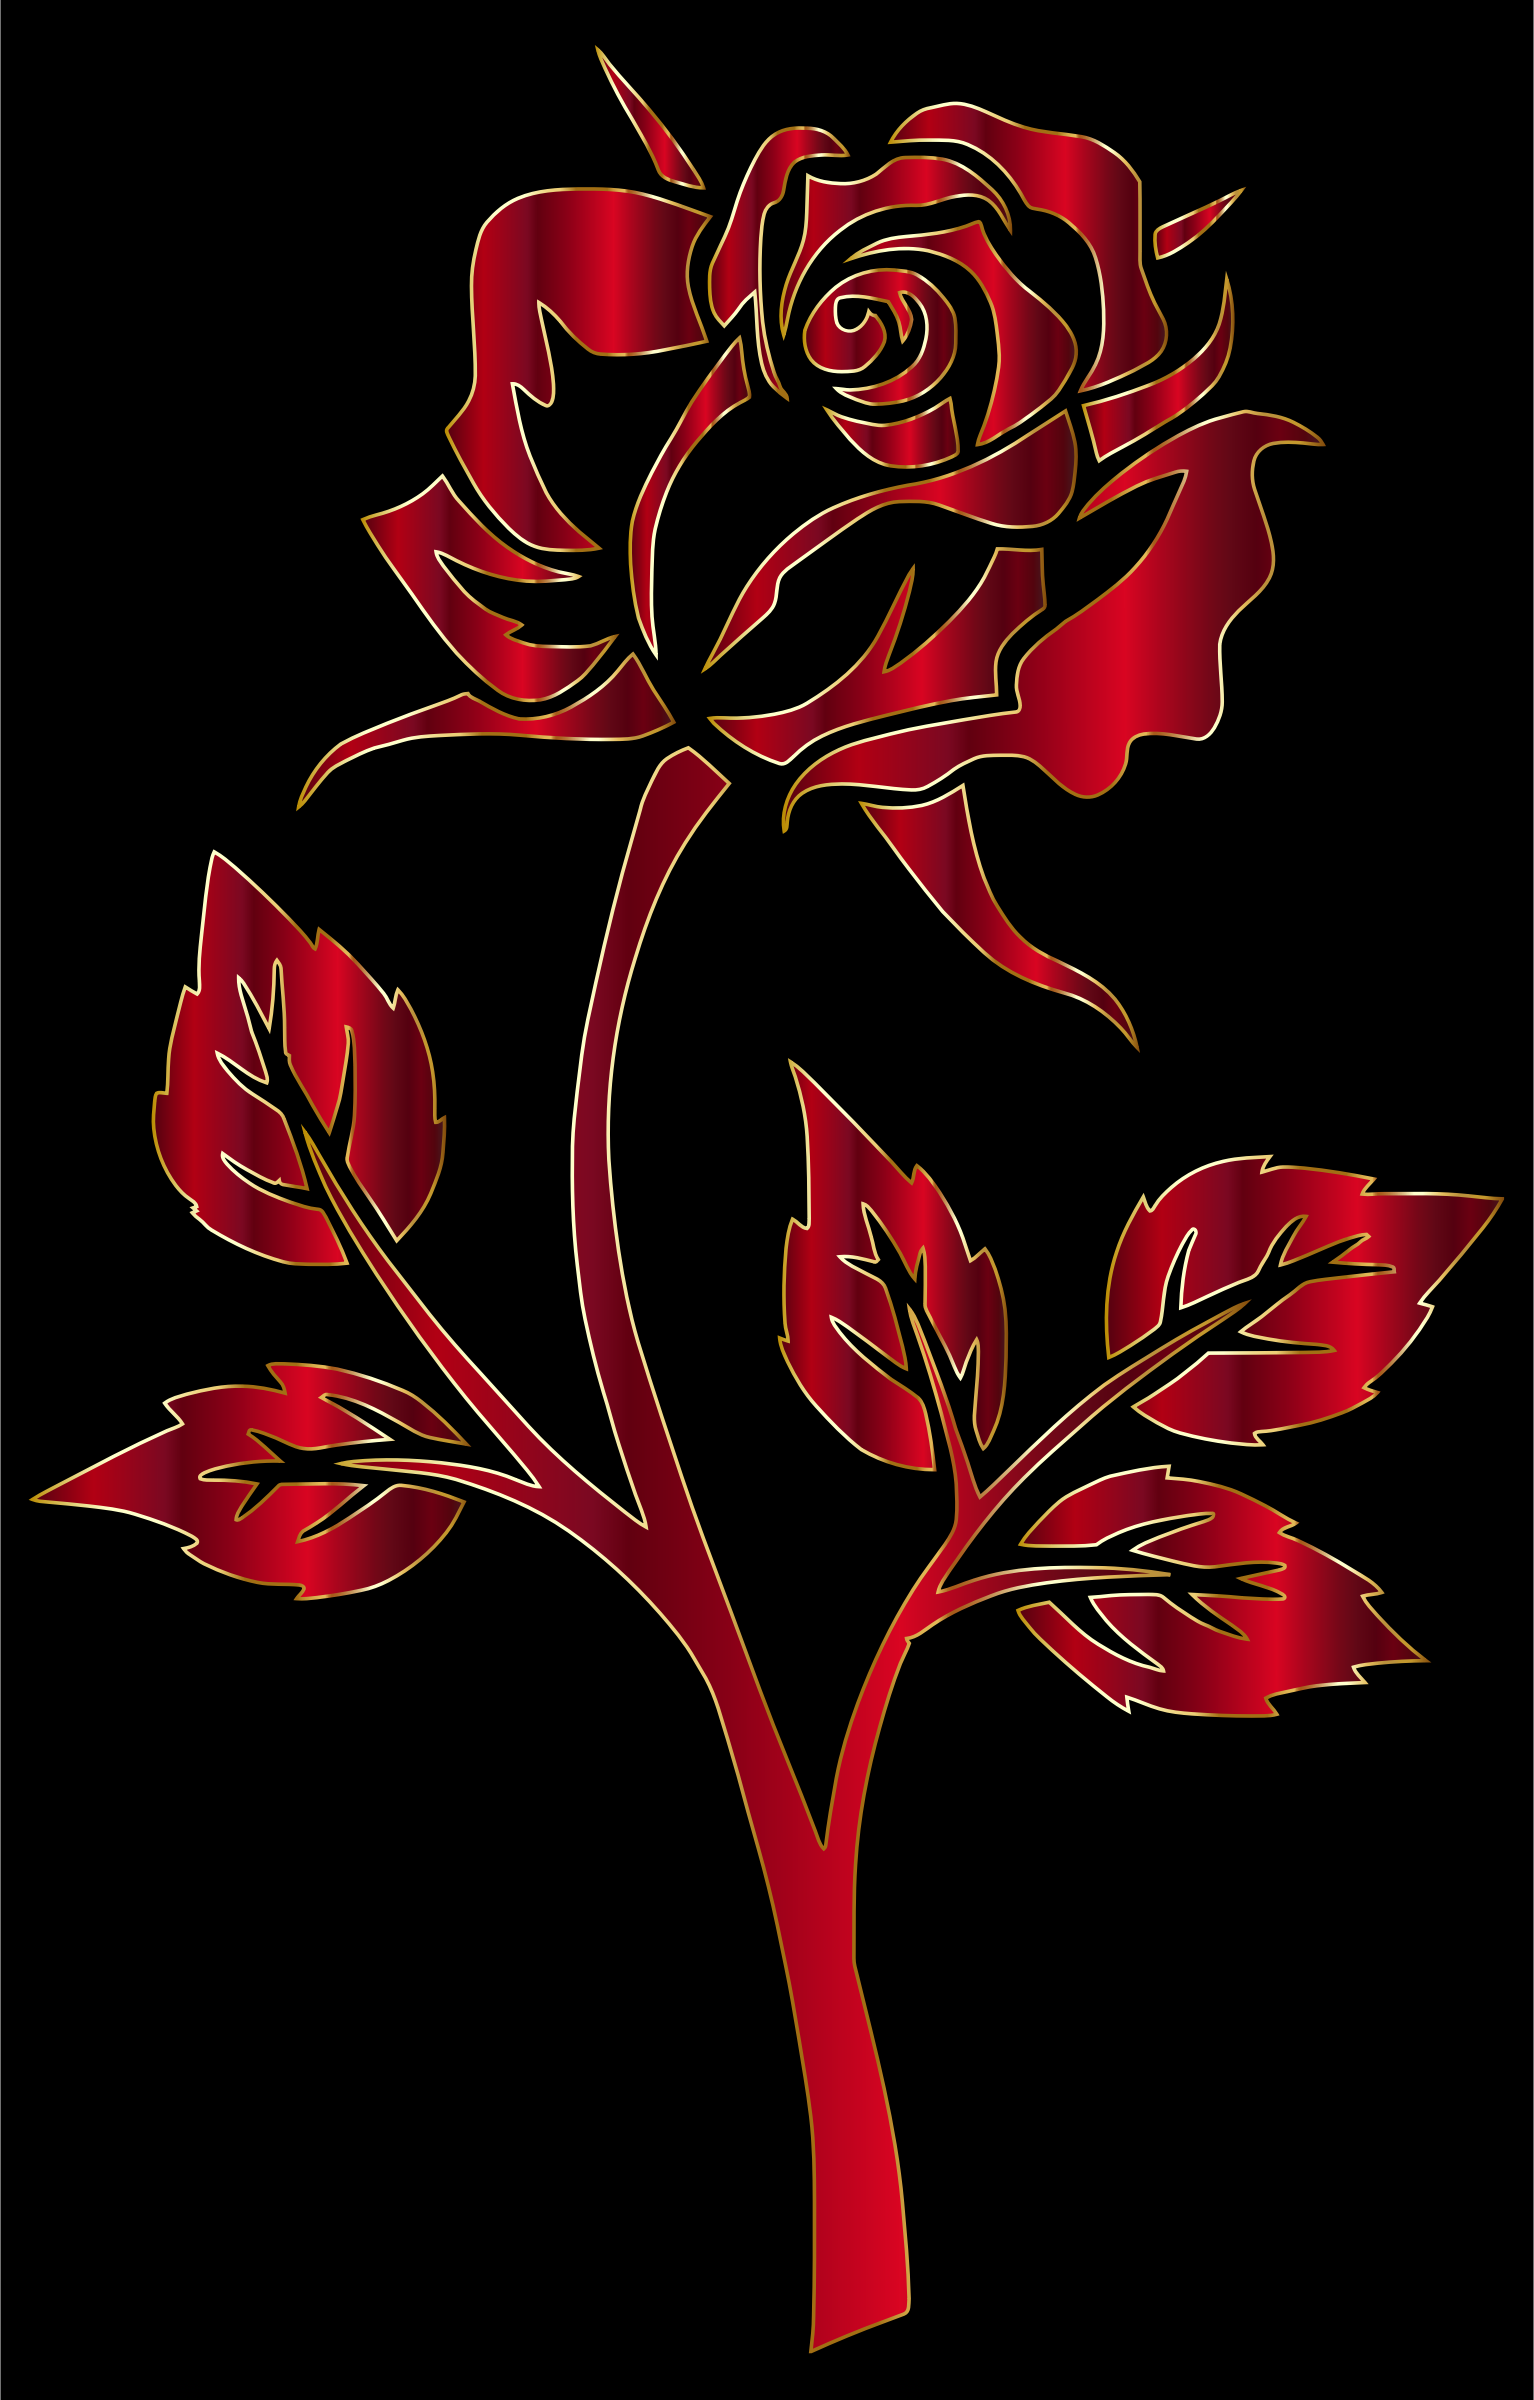 Crimson Rose Silhouette by GDJ